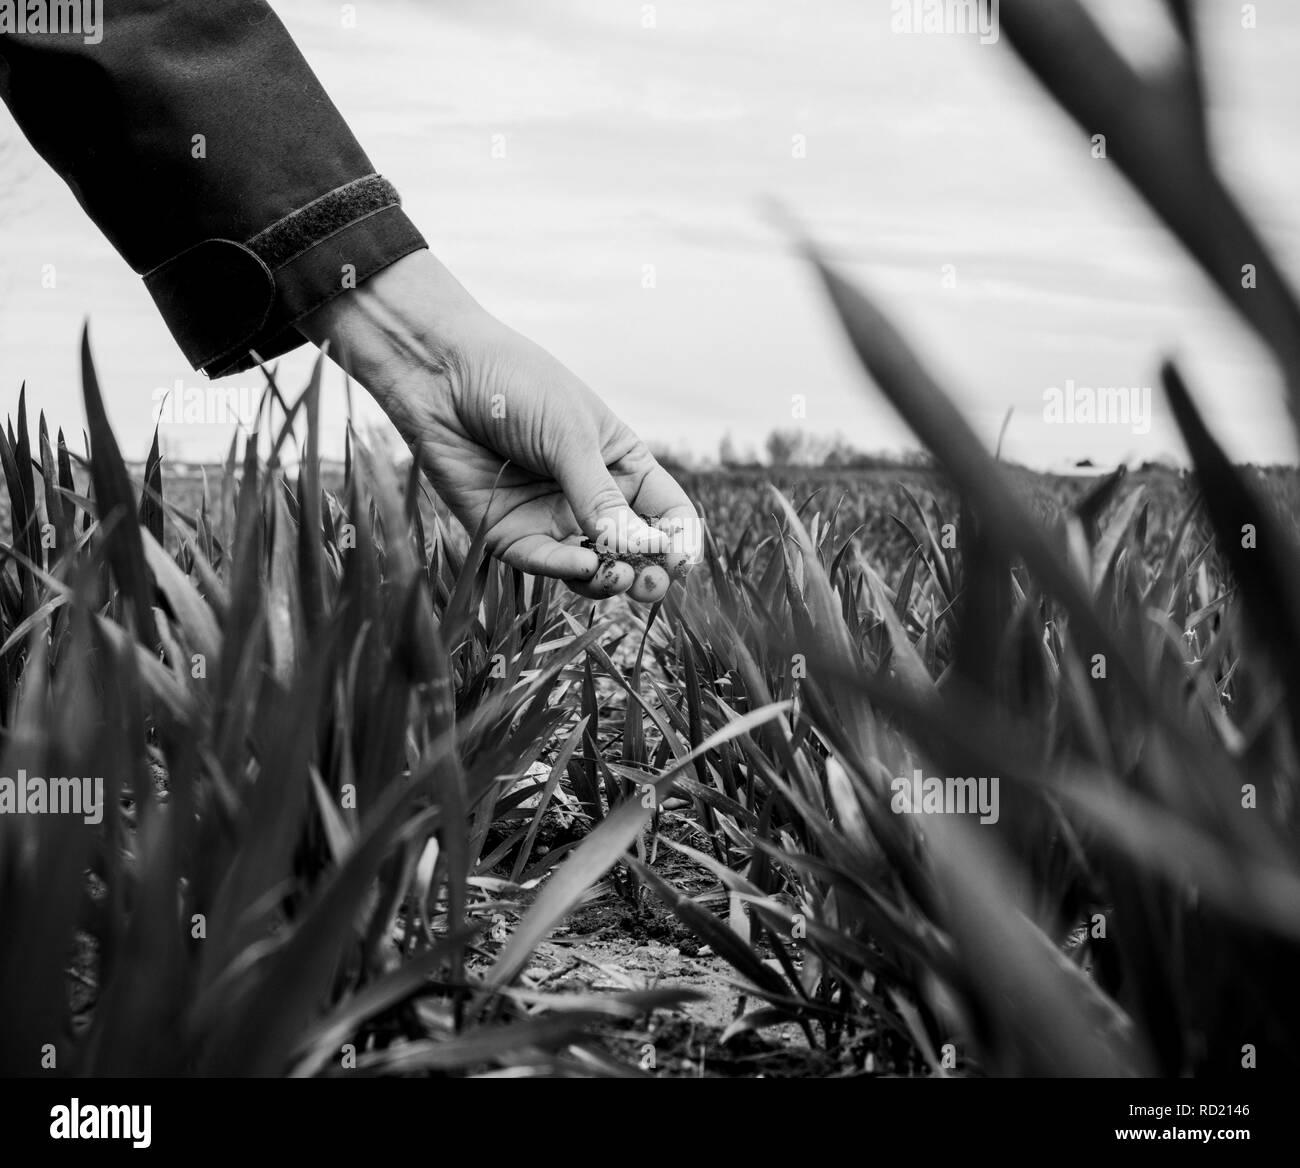 Agriculture Black And White Stock Photos & Images